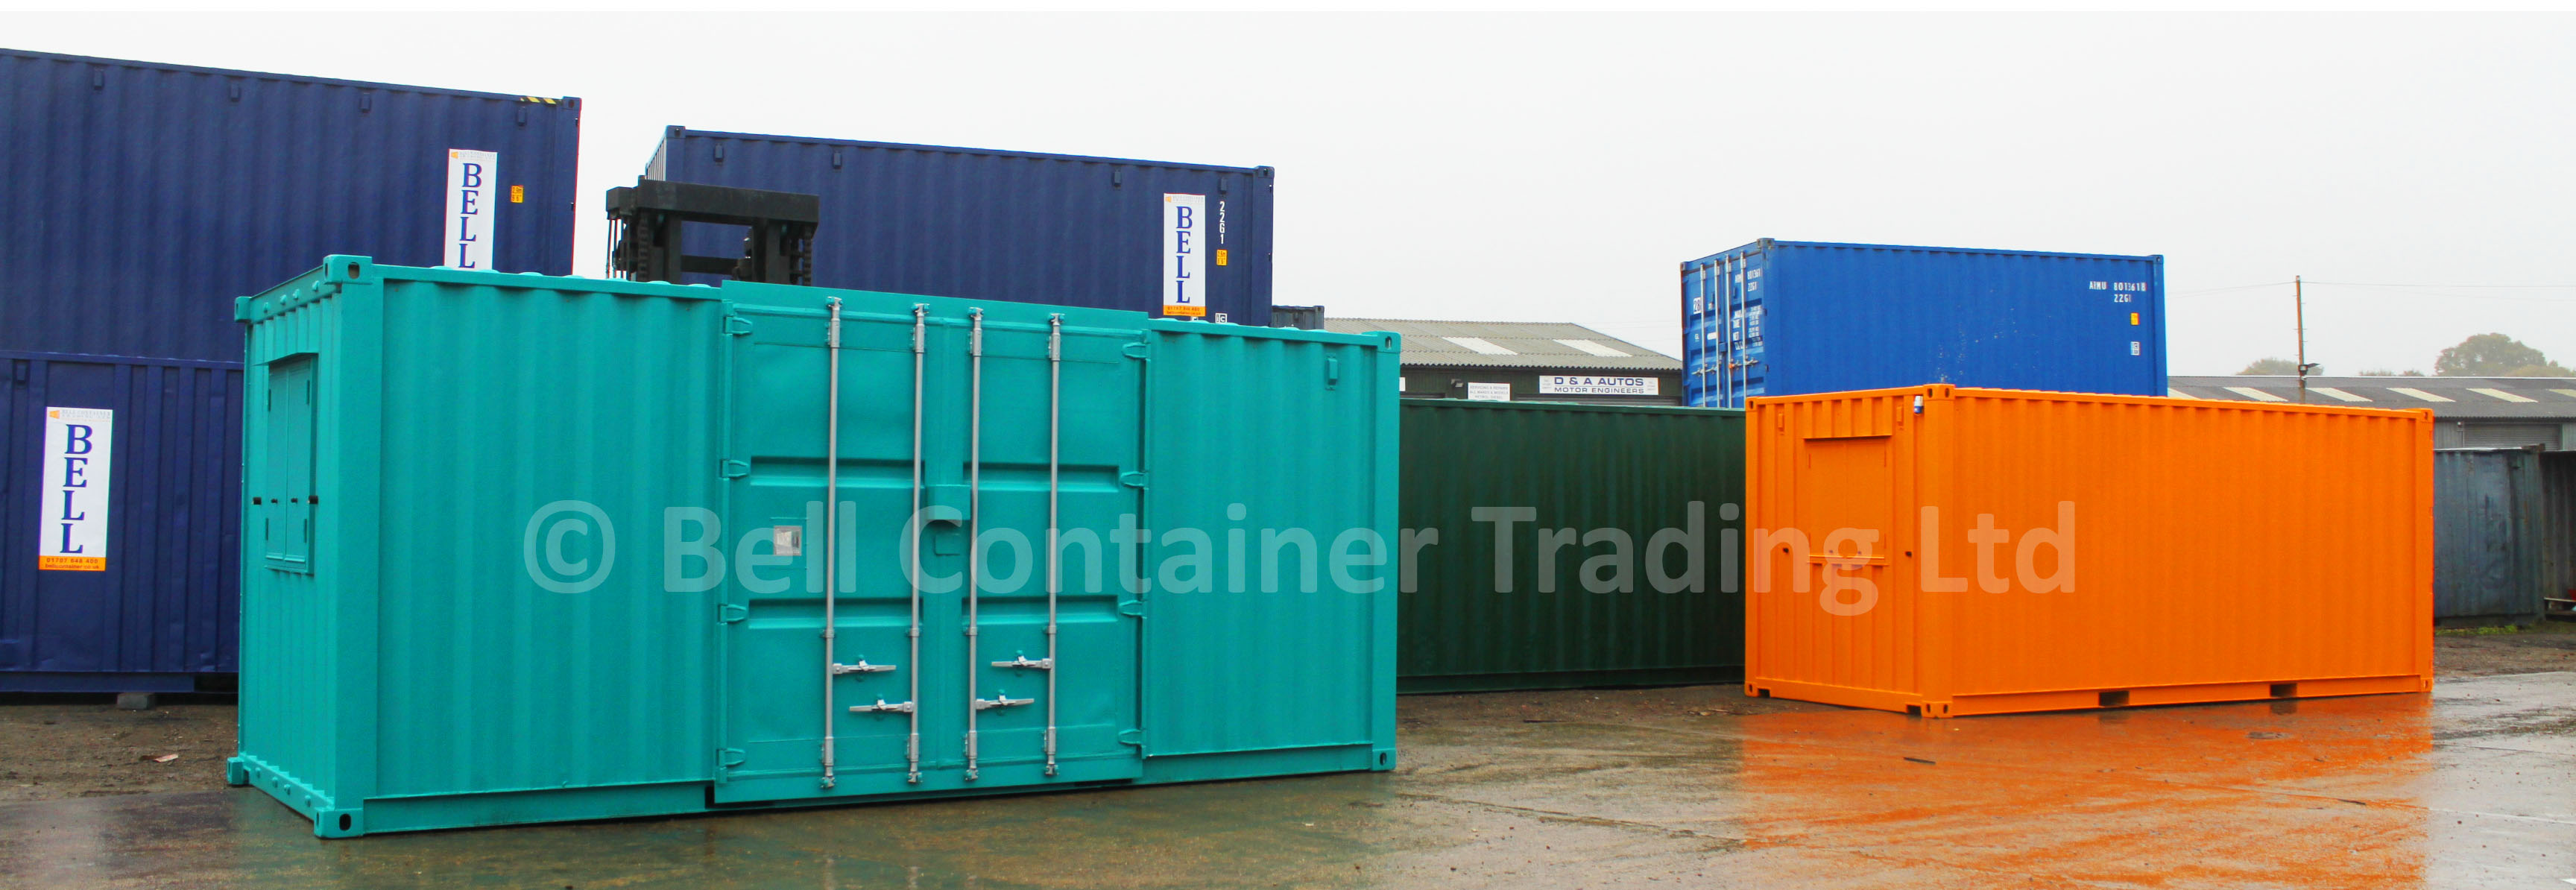 Container Artist Studios And Galleries Pop Up Containers